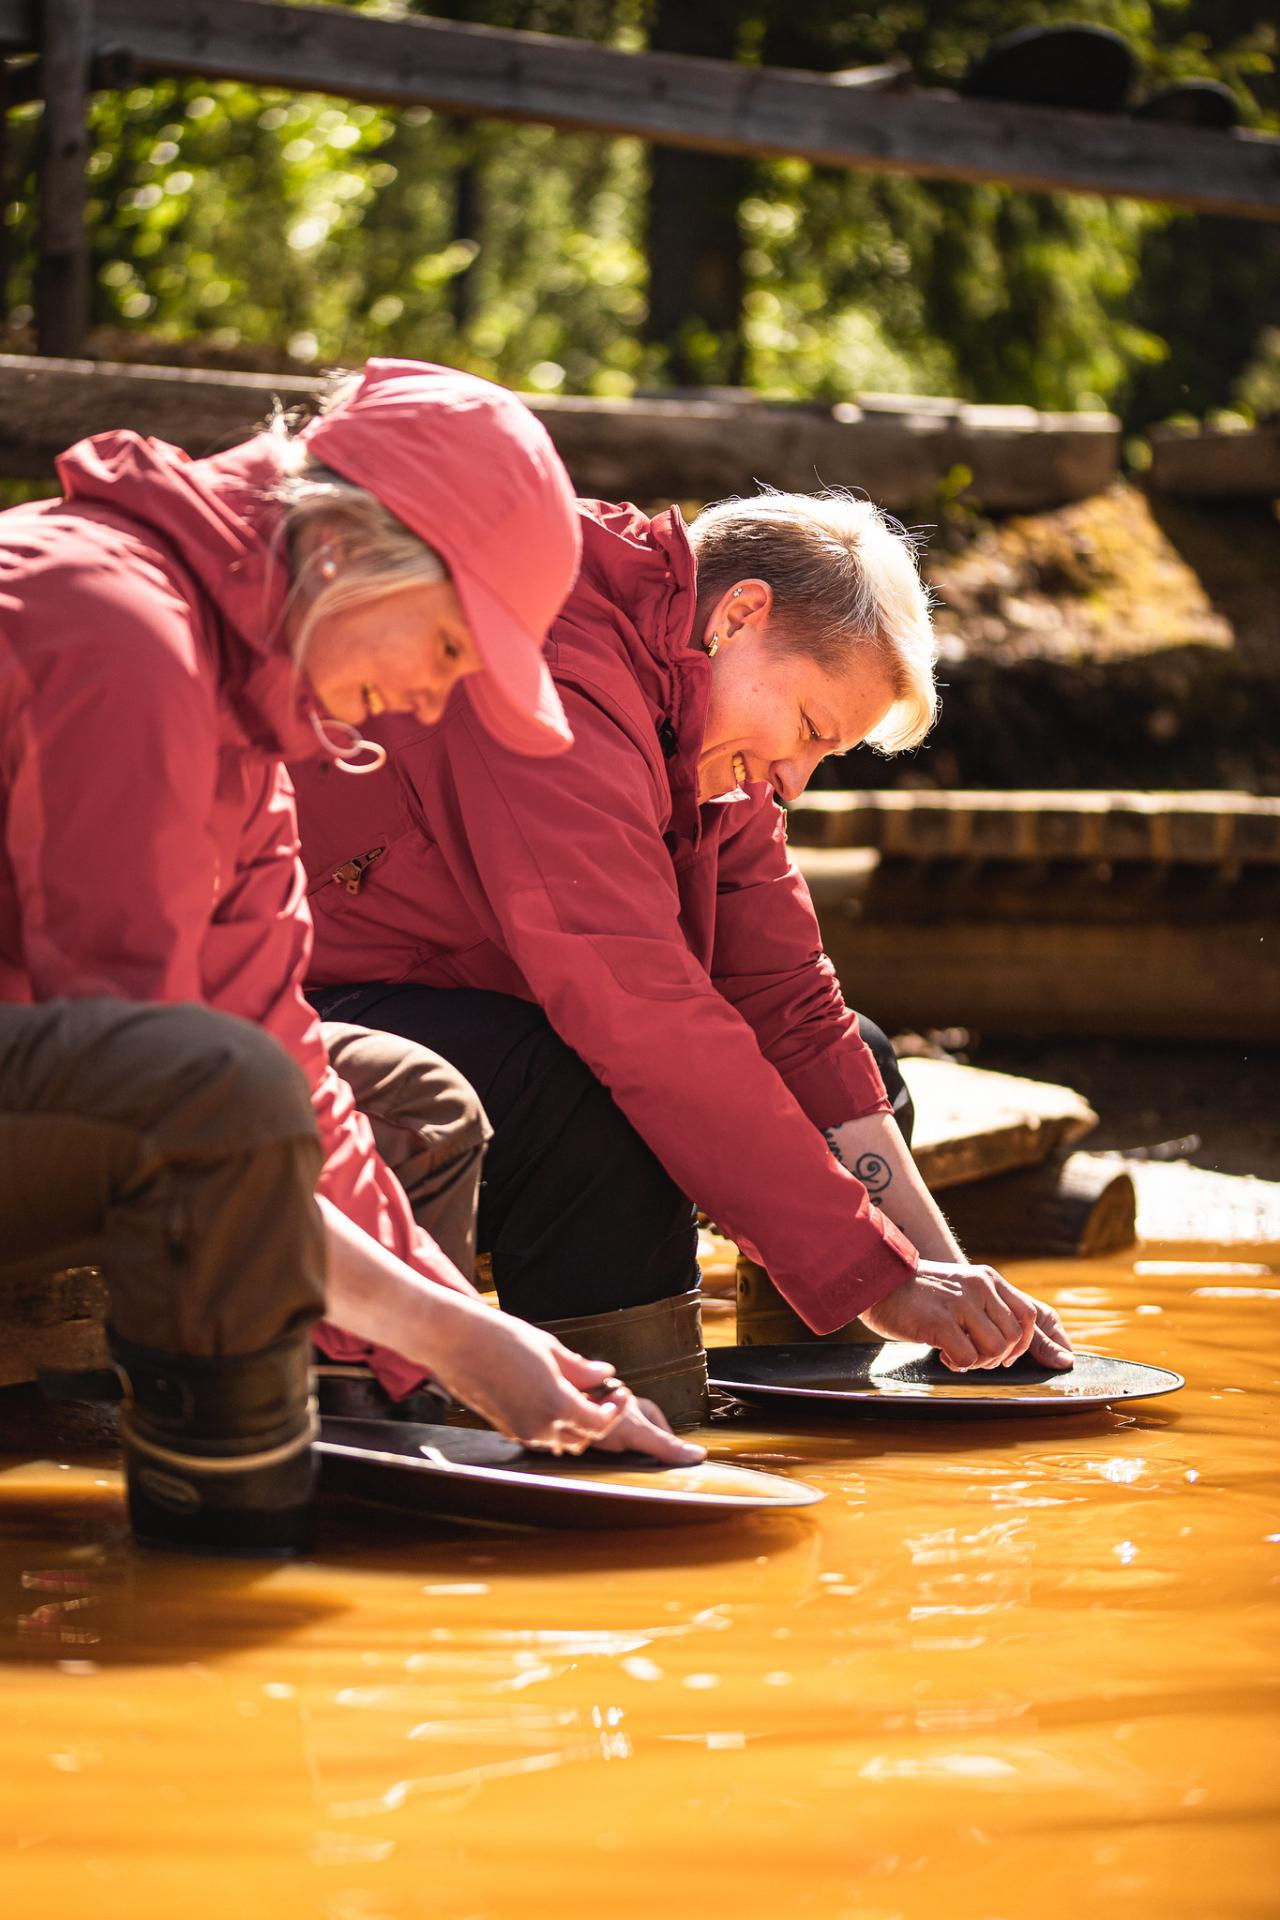 uncategorized - gold_panning_heikki_sulander_photo - Visit Sompio - 08